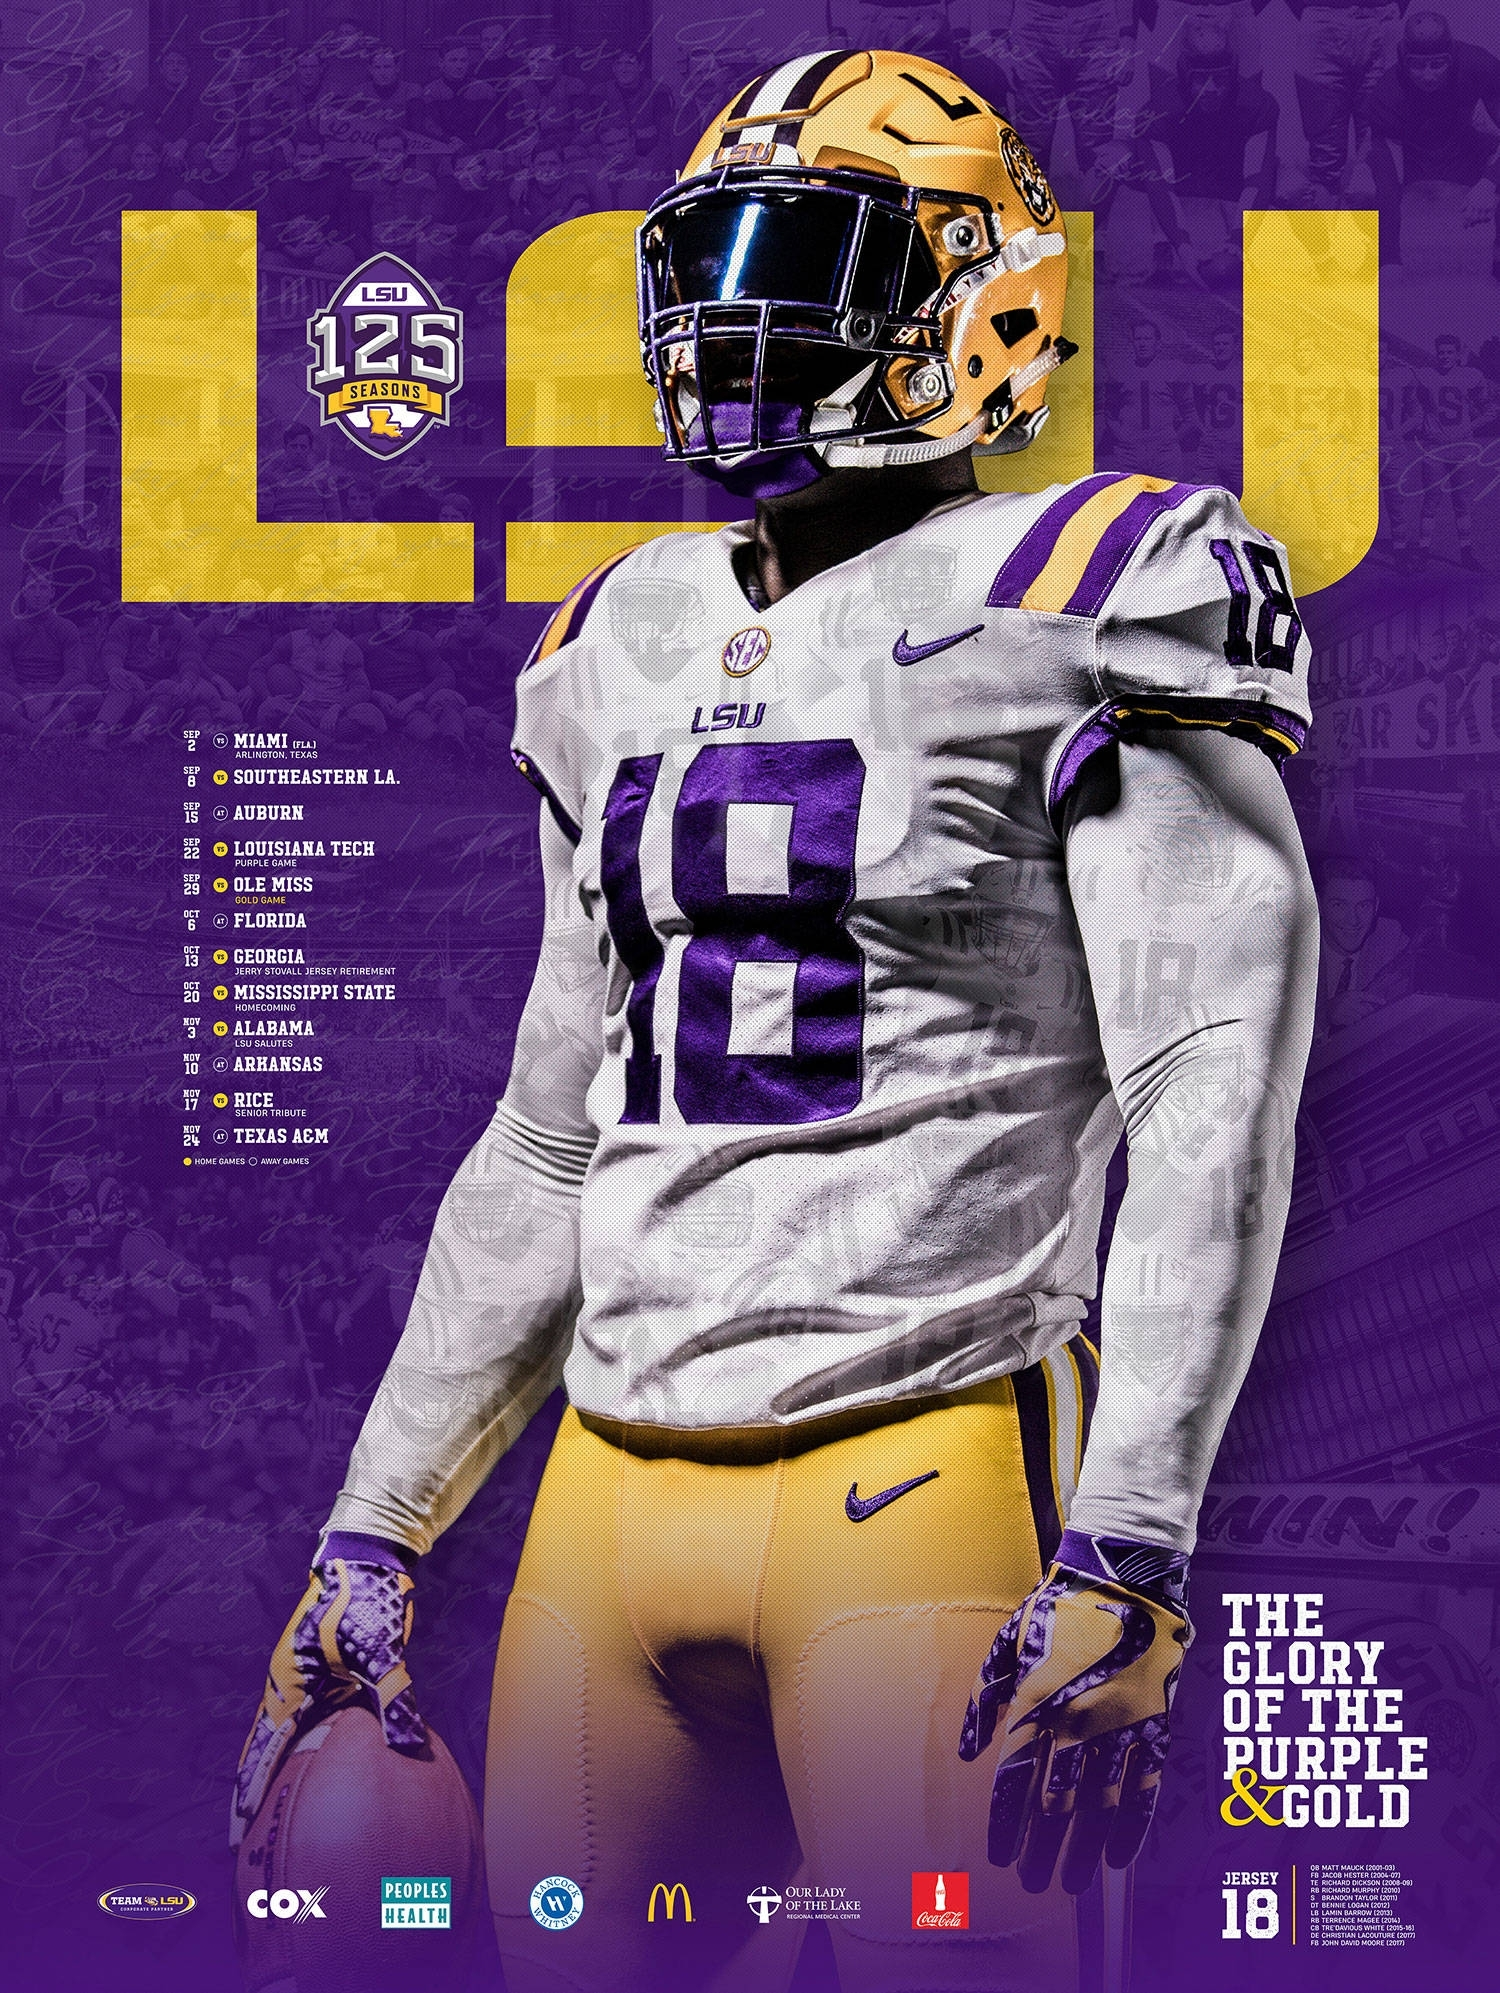 2018-19 Lsu Athletics Posters - Lsusports - The Official Web